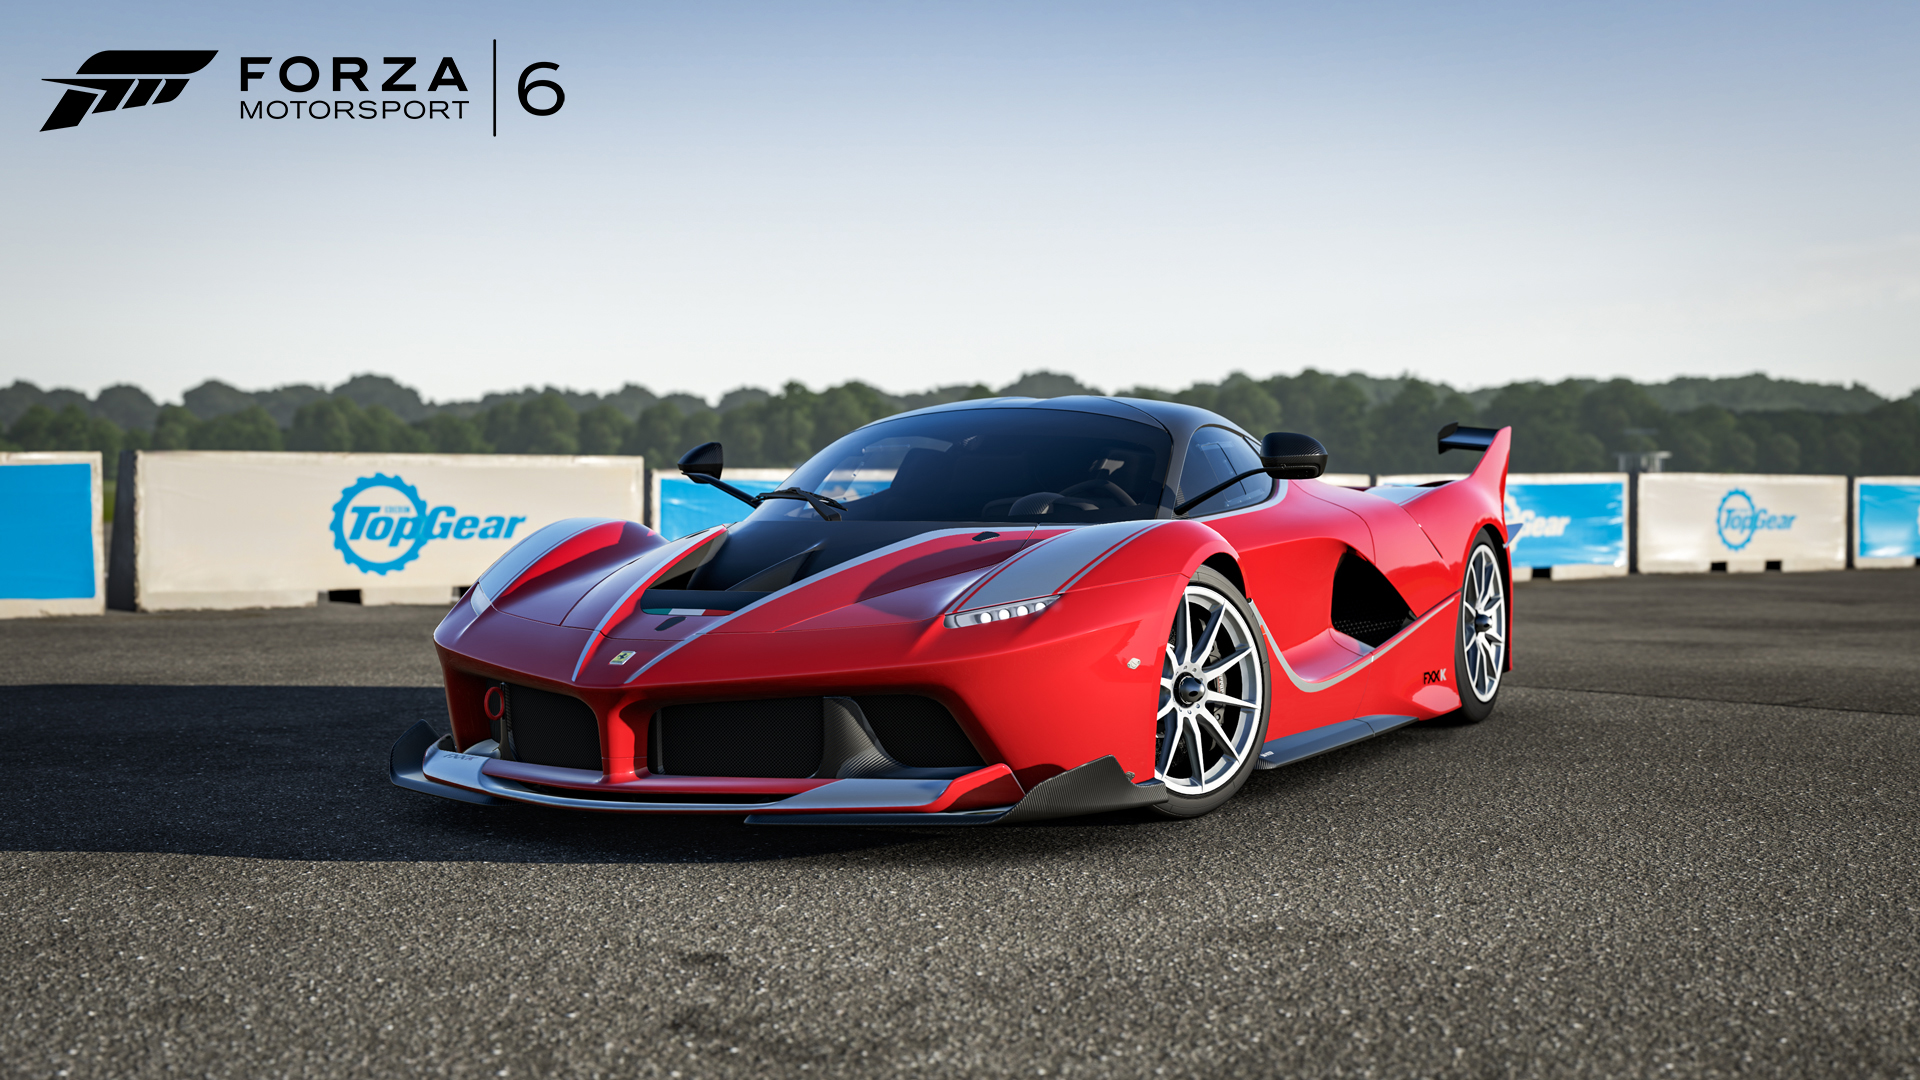 Forza Motorsport Top Gear Car Pack